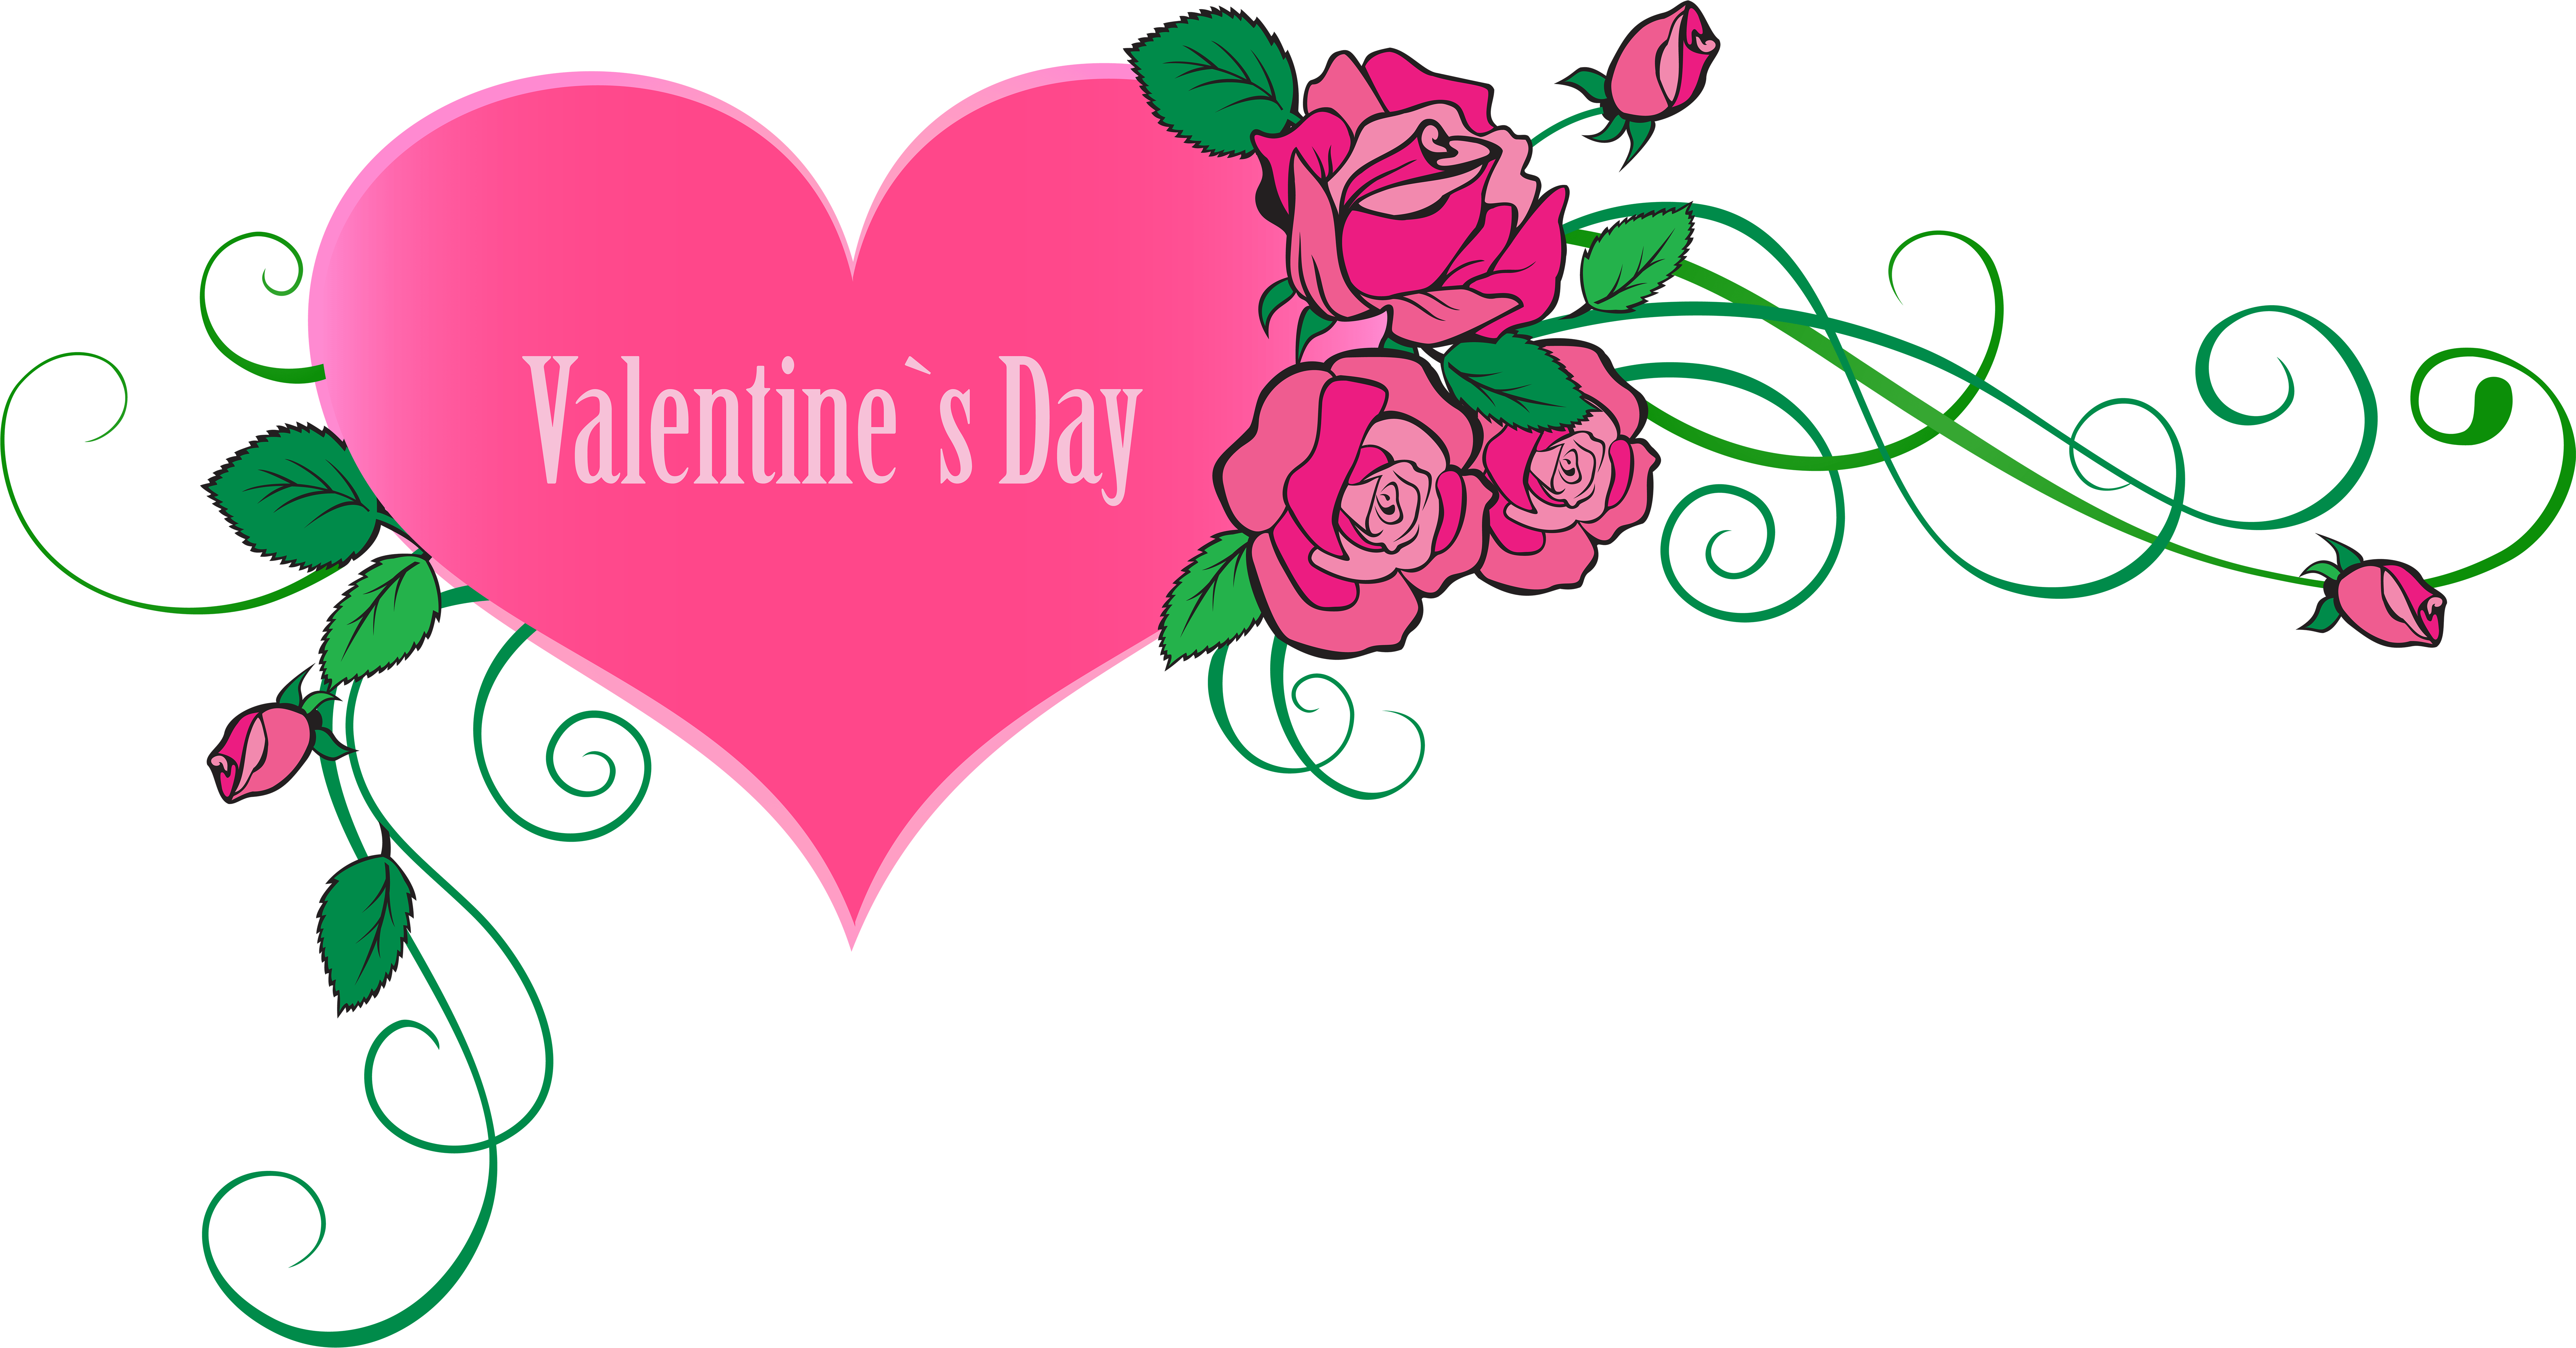 Transparent valentine's day clip art - Happy Valentine's Day Heart With Roses Transparent - Happy Valentine Day View